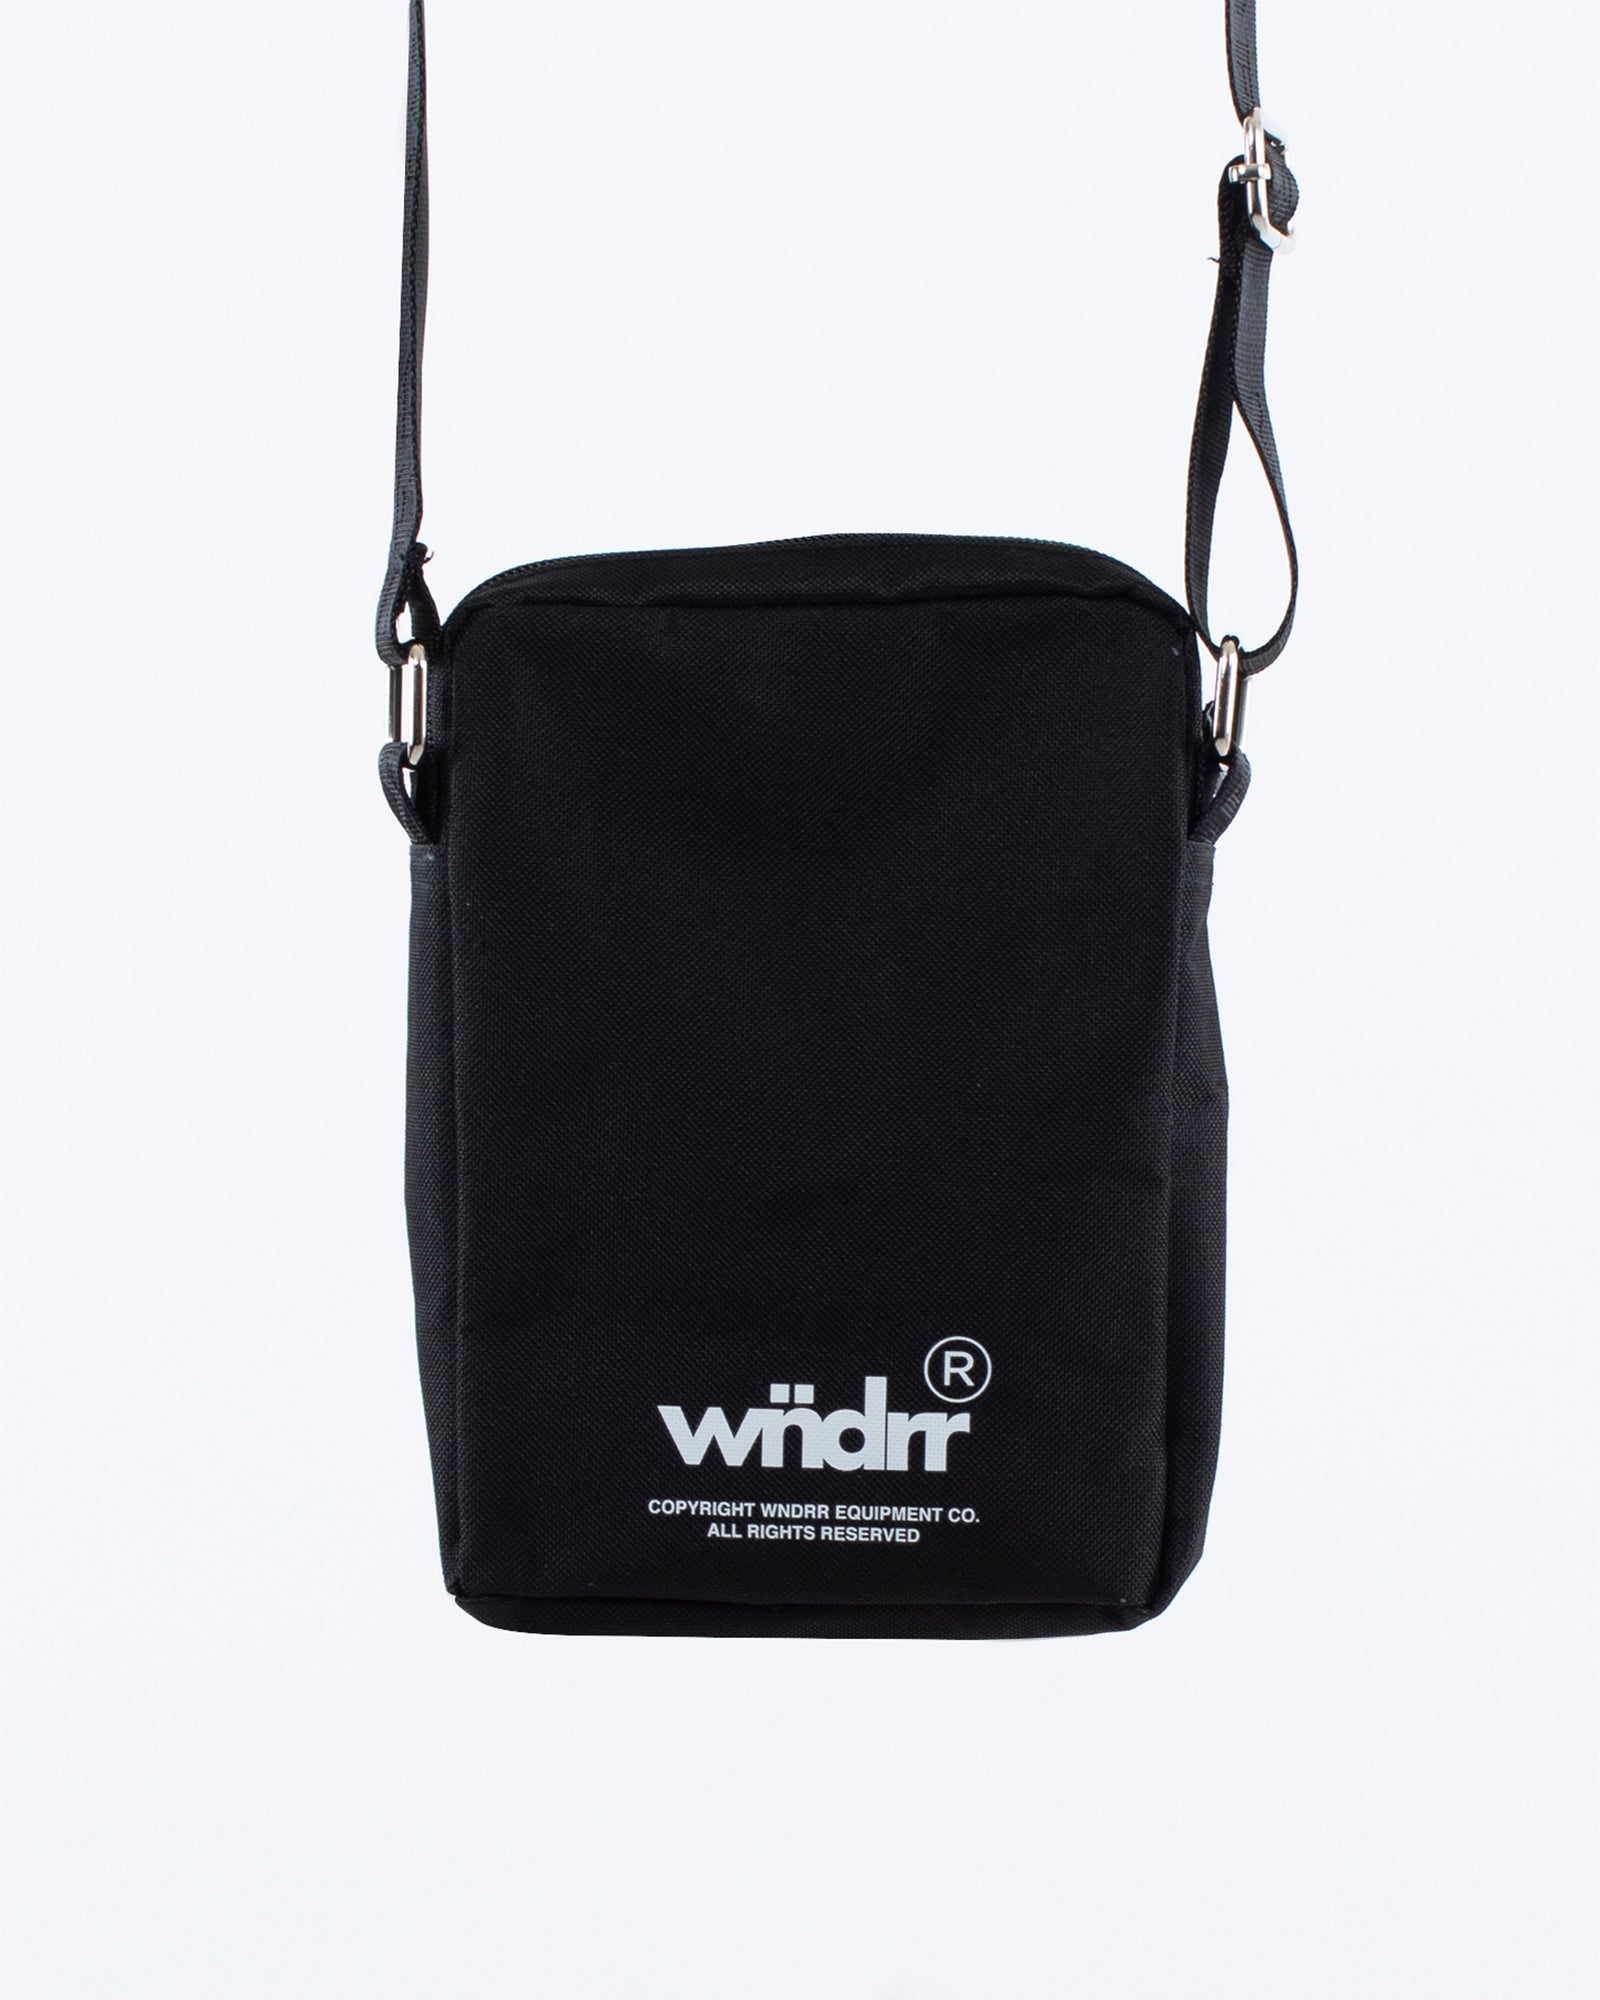 Wndrr Offcut Side Bag - Black